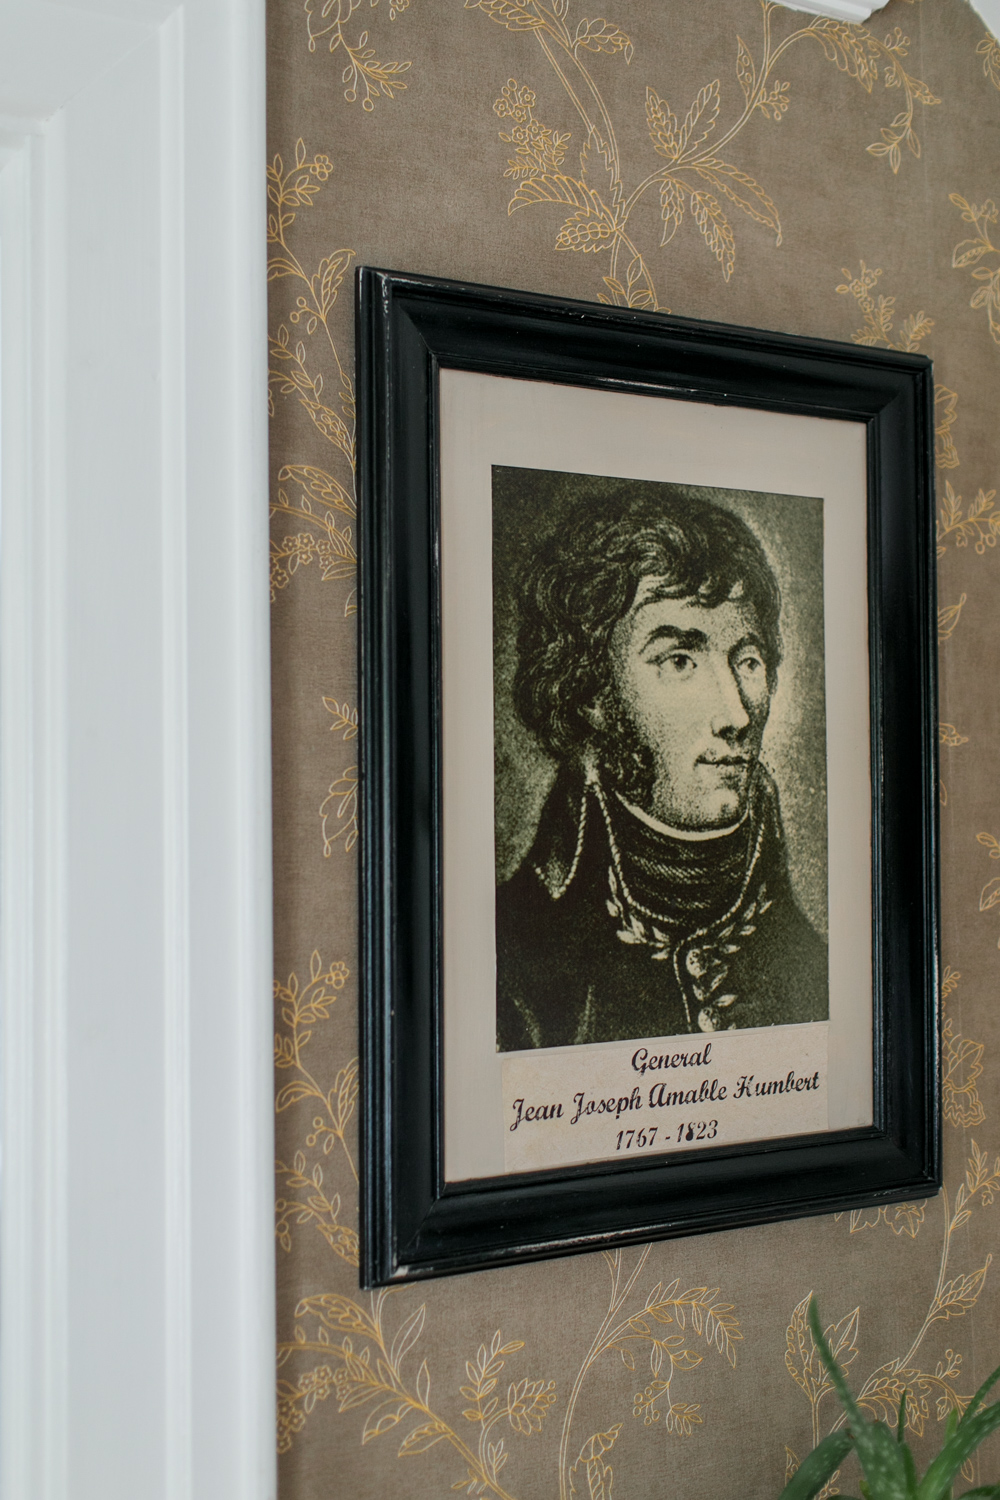 general jean joseph amable kumbert framed vintage depiction on the wall